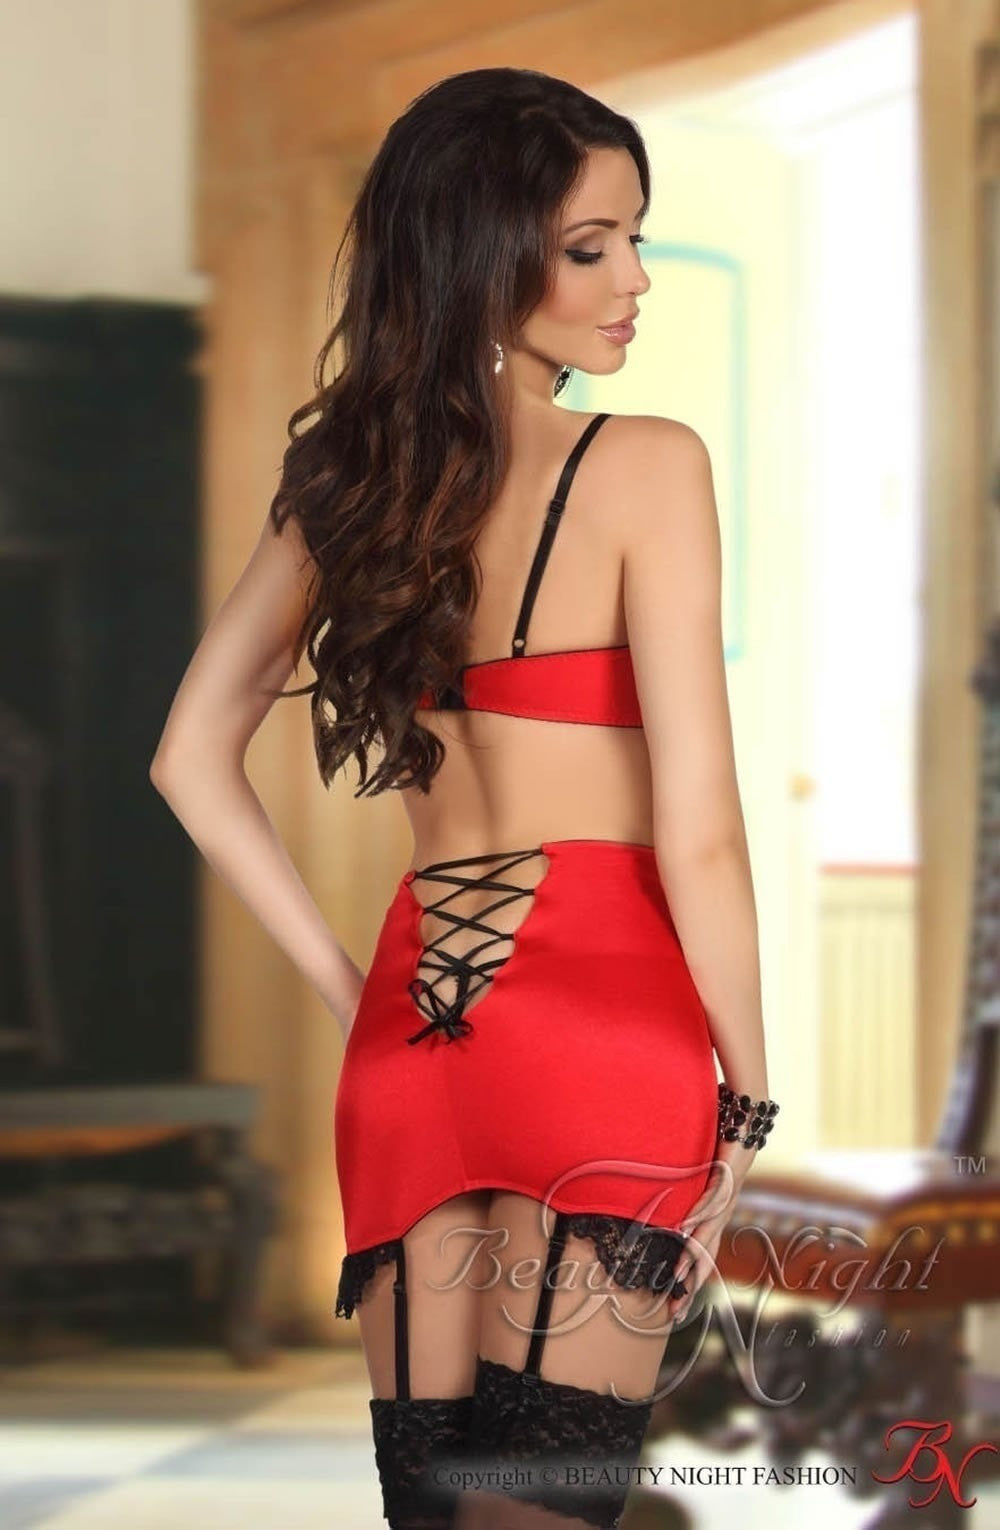 Beauty Night La Bonita Set (Red) - Lingerie Sets - Beauty Night - Charm and Lace Boutique